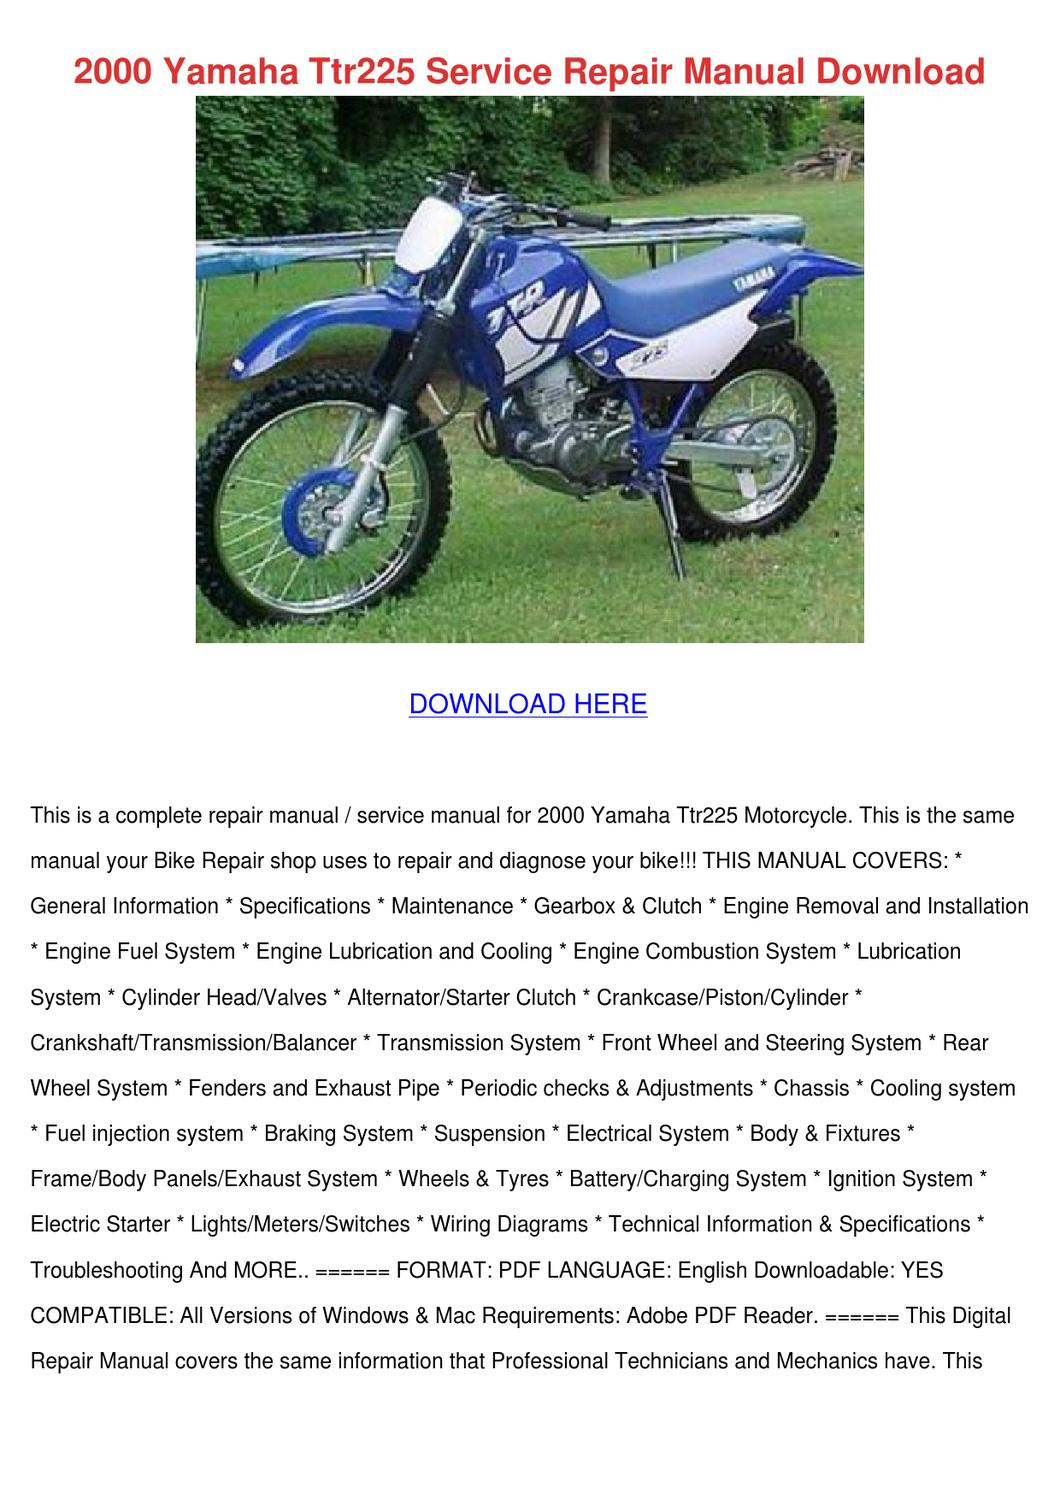 2000 Yamaha Ttr225 Service Repair Manual Down by Elinore Modafferi - issuu